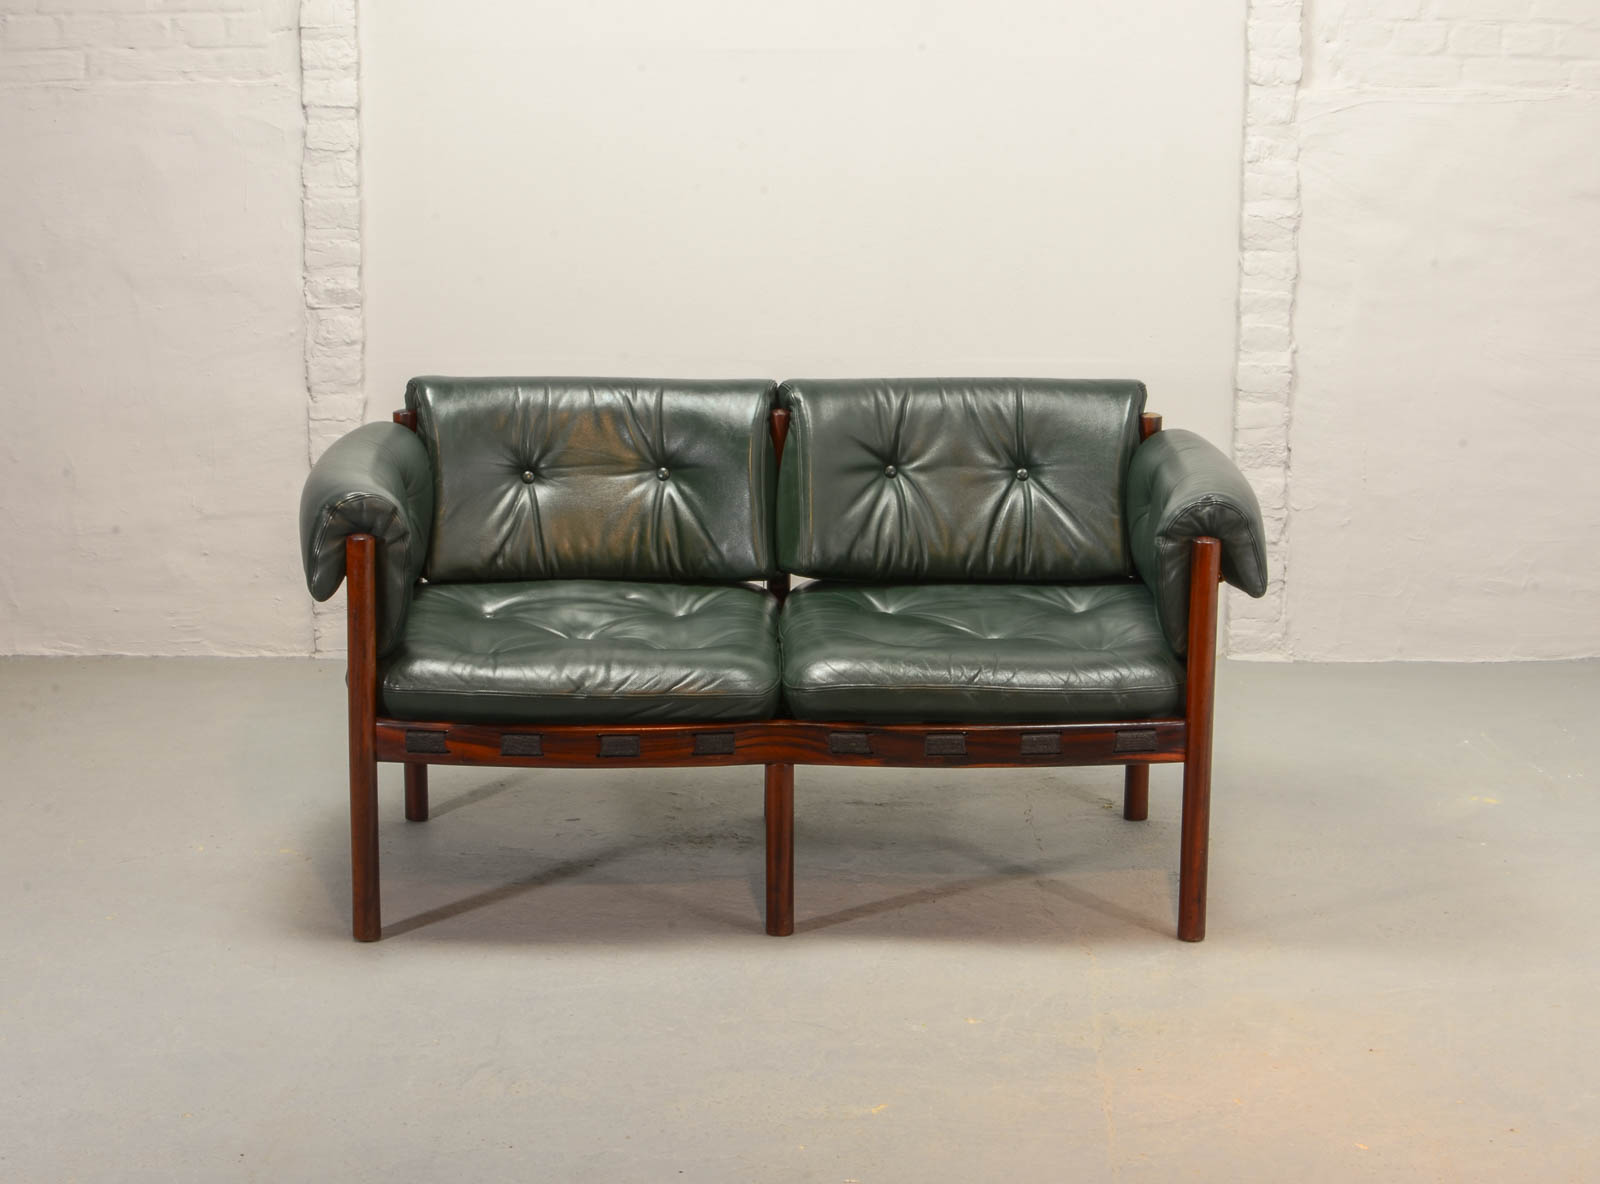 Midcentury Two-Seat Rosewood and Green Leather Sofa by Arne ...